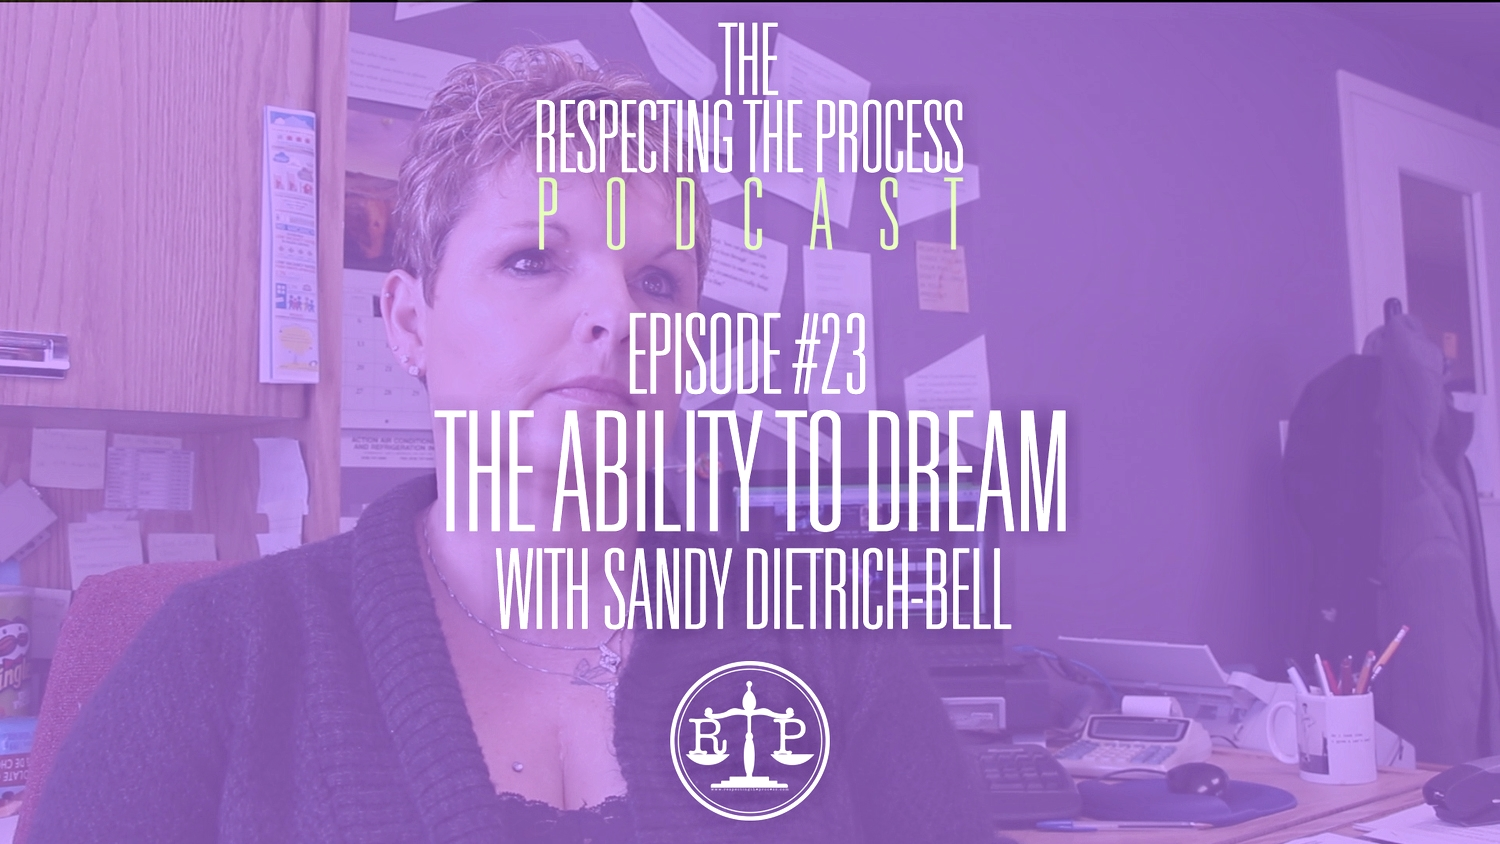 """Sandy Dietrich-Bell has been the Chief Executive Officer of oneROOF since 2006 and has worked in the field of social services since 1999. Sandy is also a therapist specializing in trauma and abuse, a part-time faculty at Conestoga College, and a proud mother and grandmother.   """"I have always been drawn to the field of social services because I really want to make a difference in this world. Having lived-experienced myself, I have always felt that I needed to be part of the solution regarding the issues of youth homelessness, abuse, and societal violence.""""   Her incredible insight on the human condition, especially applied to youth, provides a rare perspective into the lives homeless adolescents."""